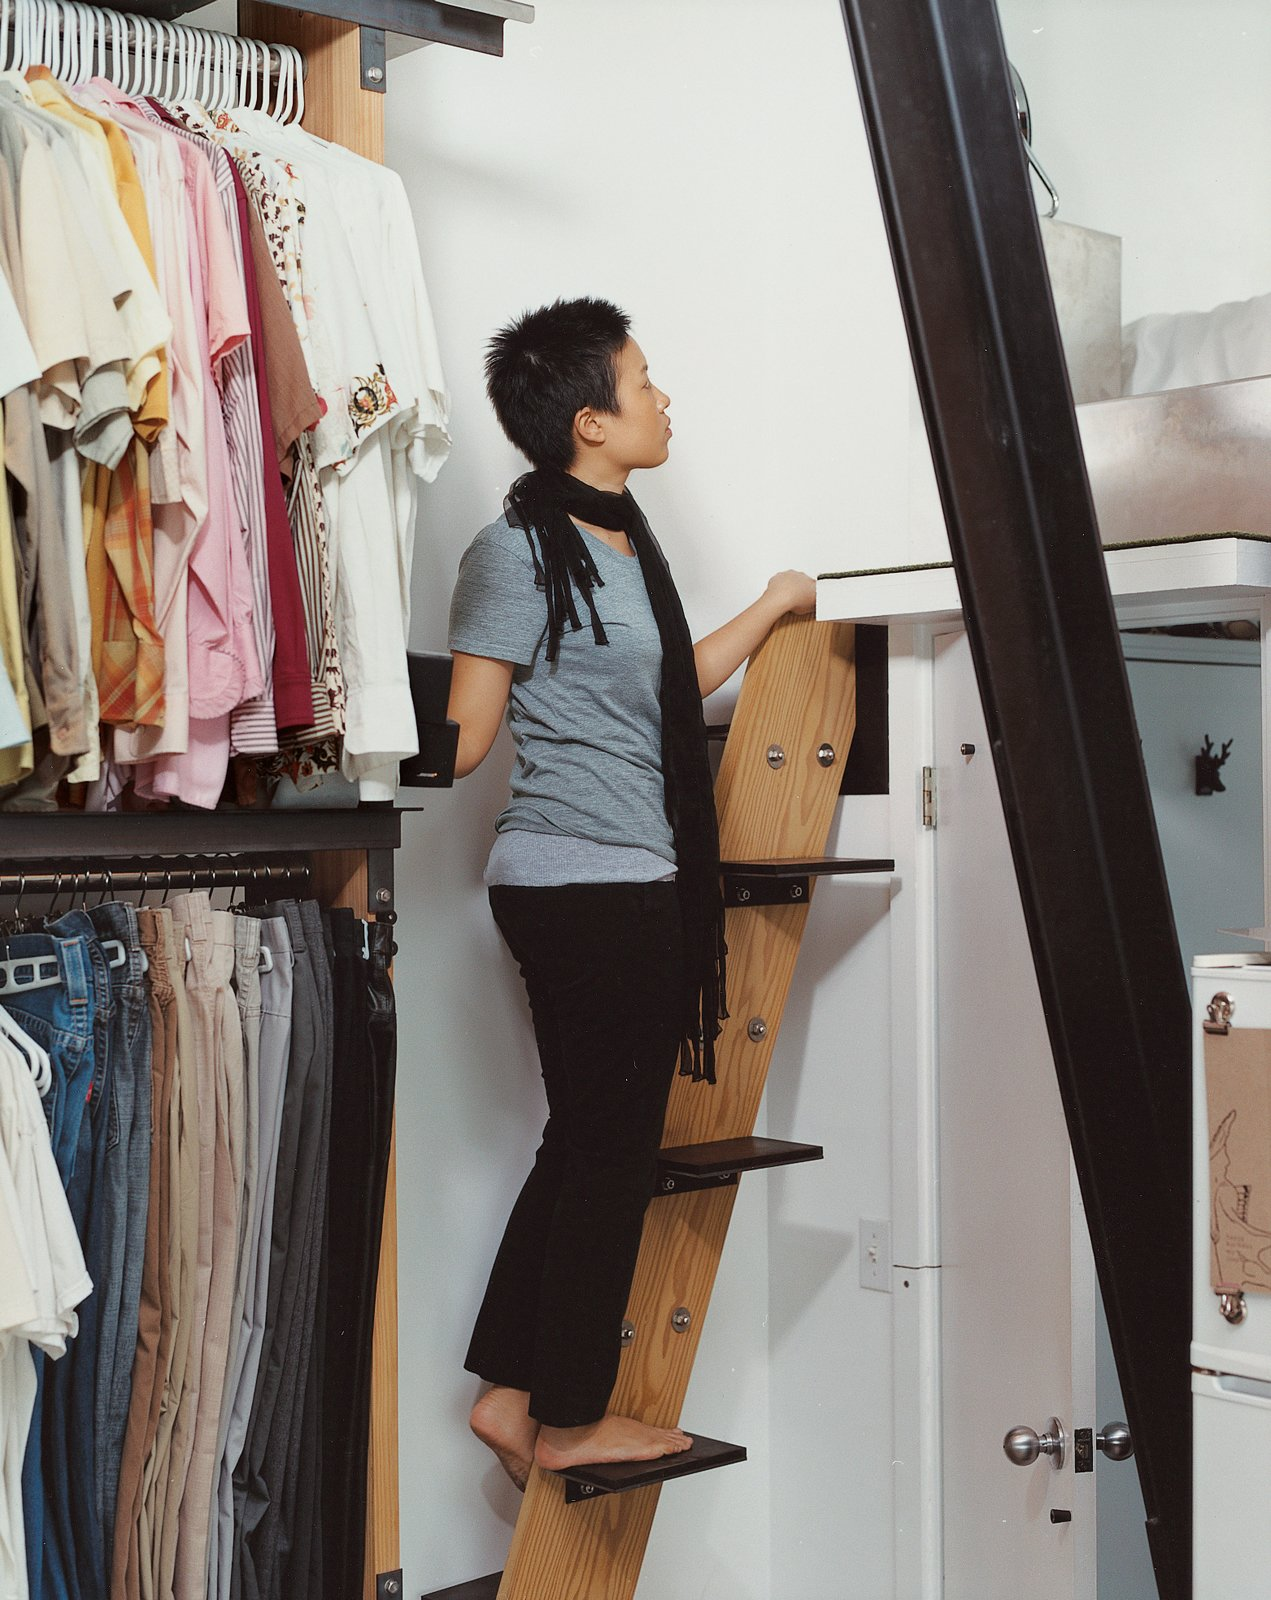 """The stairway to the sleeping loft is a riff on a ship's ladder: """"We spent a lot of time figuring out how much space we need to maneuver,"""" says David. """"It allowed us to make it as small and perfect as we wanted to."""" Instead of a handrail, sail cleats are bolted to the walls as hand-holds.  190+ Best Modern Staircase Ideas by Dwell from Modern Mixed Use in San Diego"""